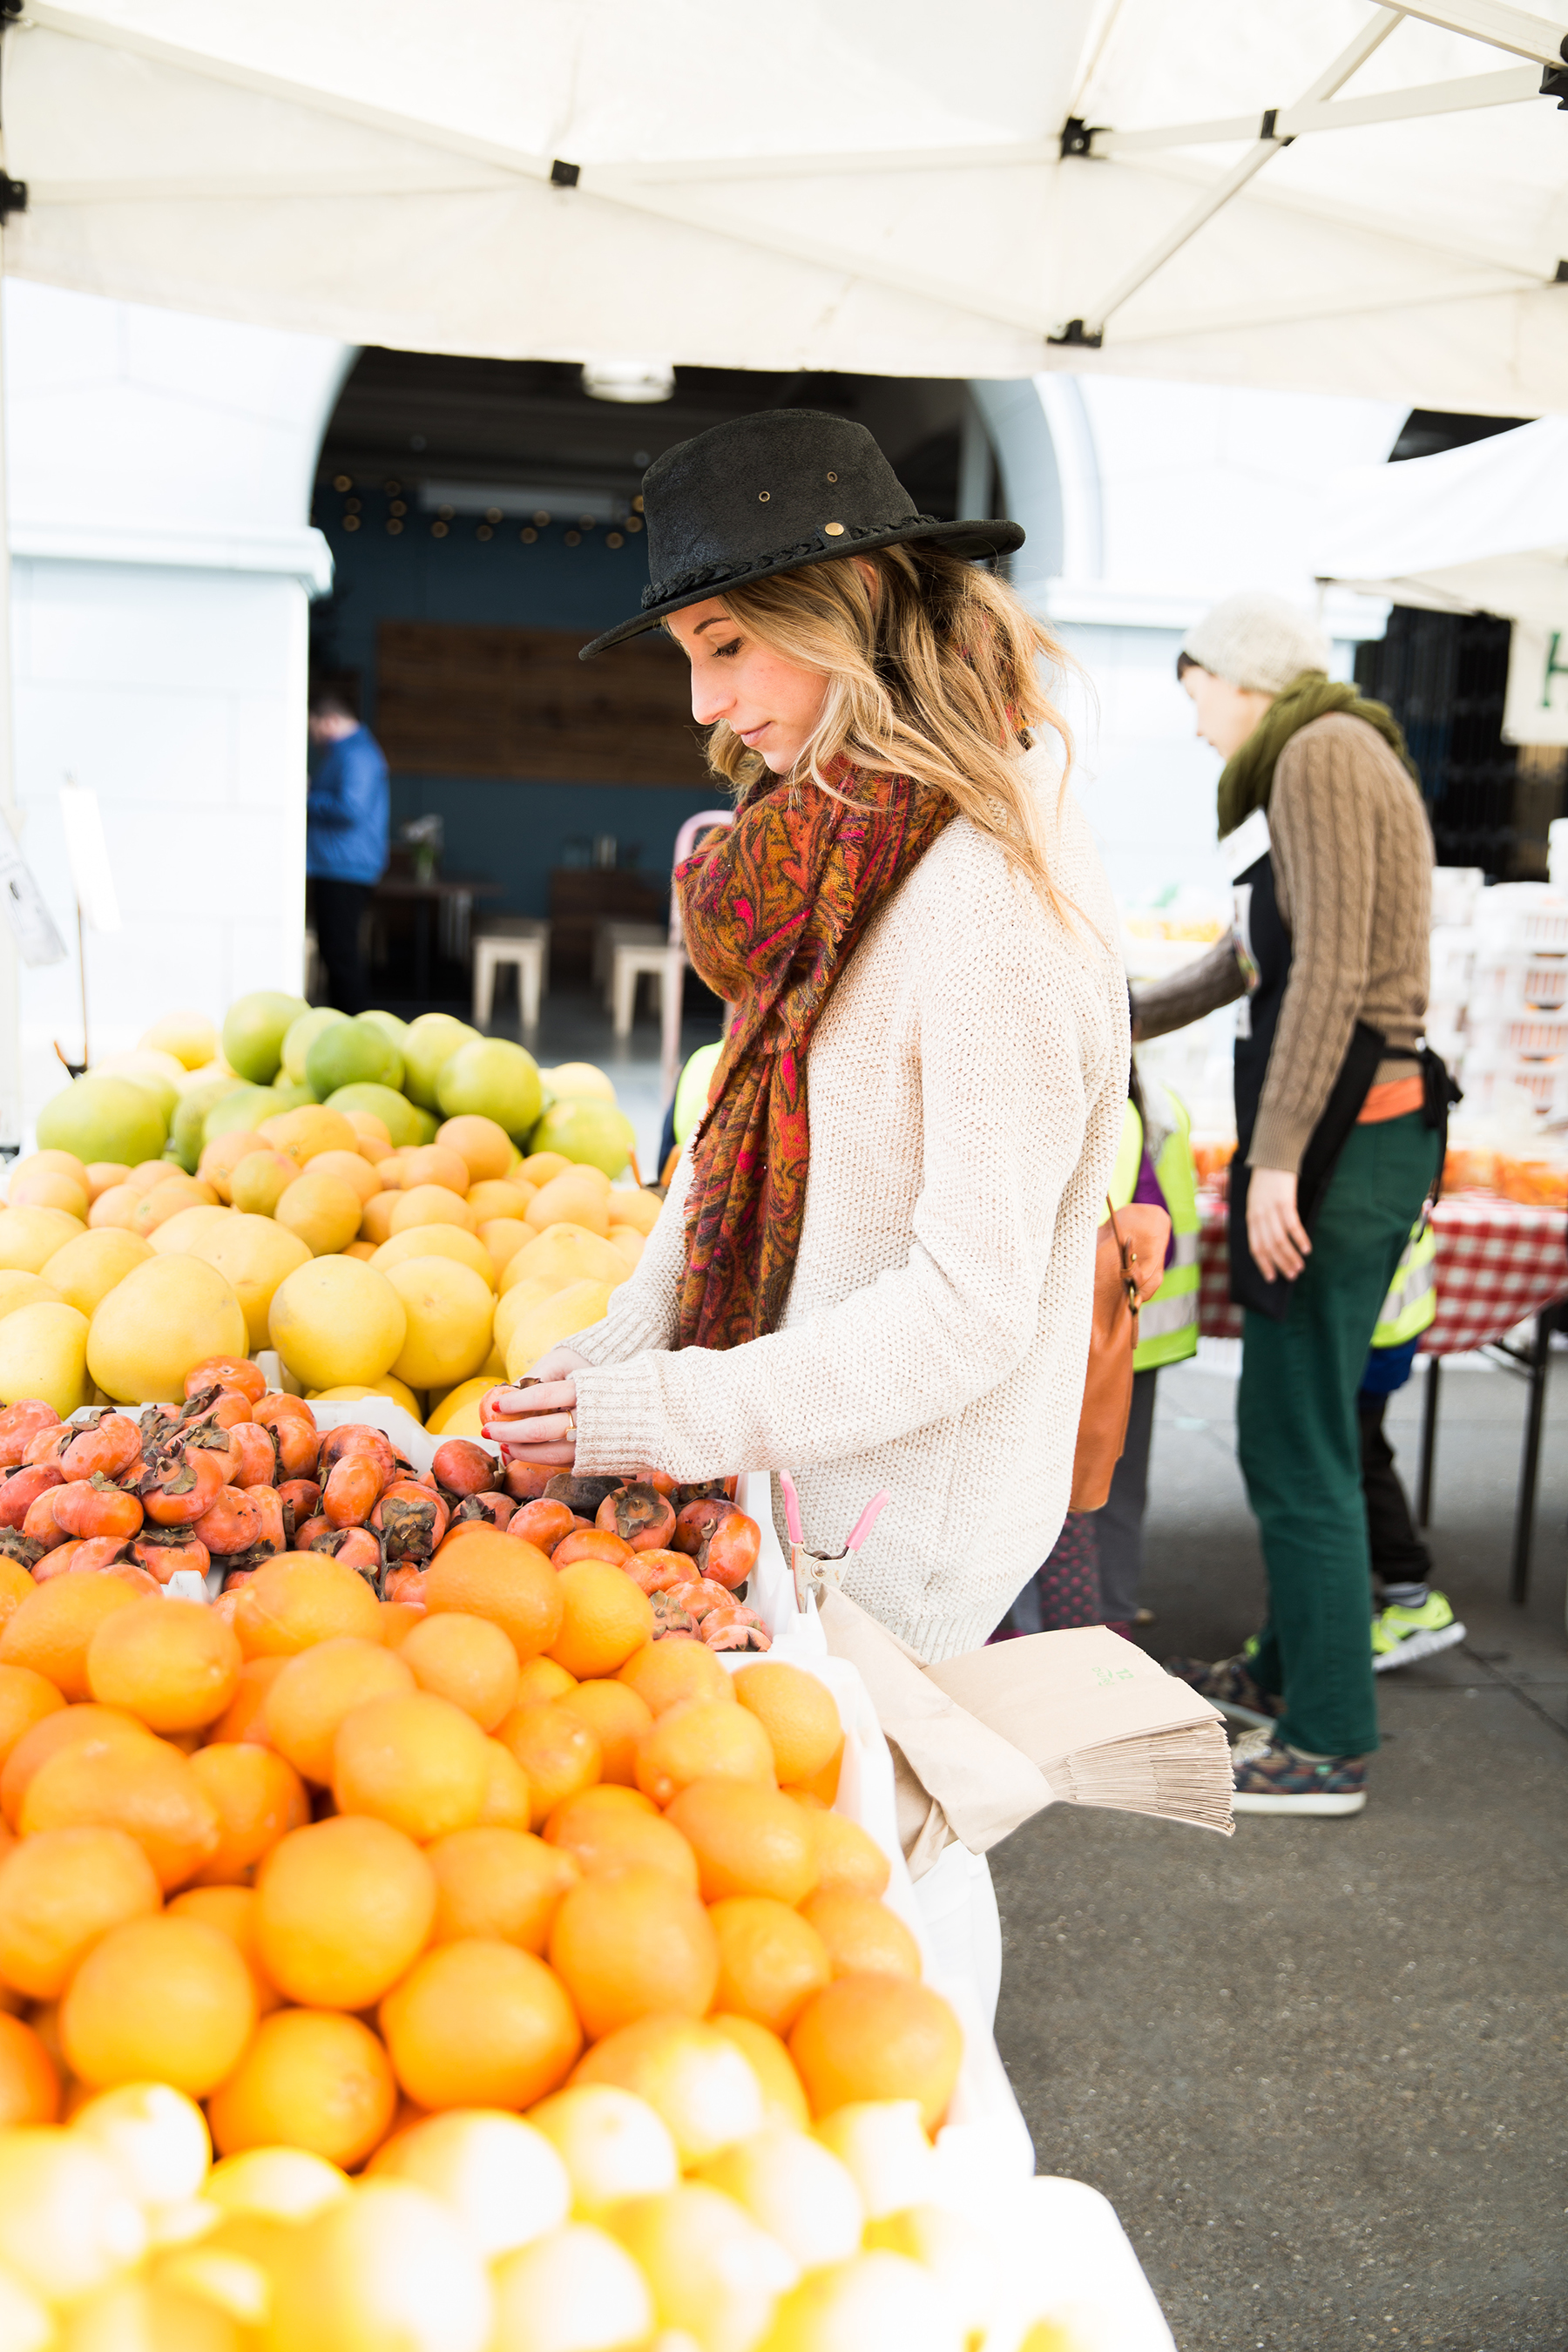 farmers market, farmers market outfit, fall outfit, fall fashion, fall colors, healthy skin 2016, healthy skin tips, skin care dos and don'ts, skincare tips, skin care tips, healthy skin routine, healthy skin regimen, new skin care line, bareMinerals skin care, bareMinerals skincare products review, healthy habits, fruits & veggies, beauty routine, beauty tips, skincare tutorial, photography by Andrea Posadas for Advicefroma20Something.com Amanda Holstein